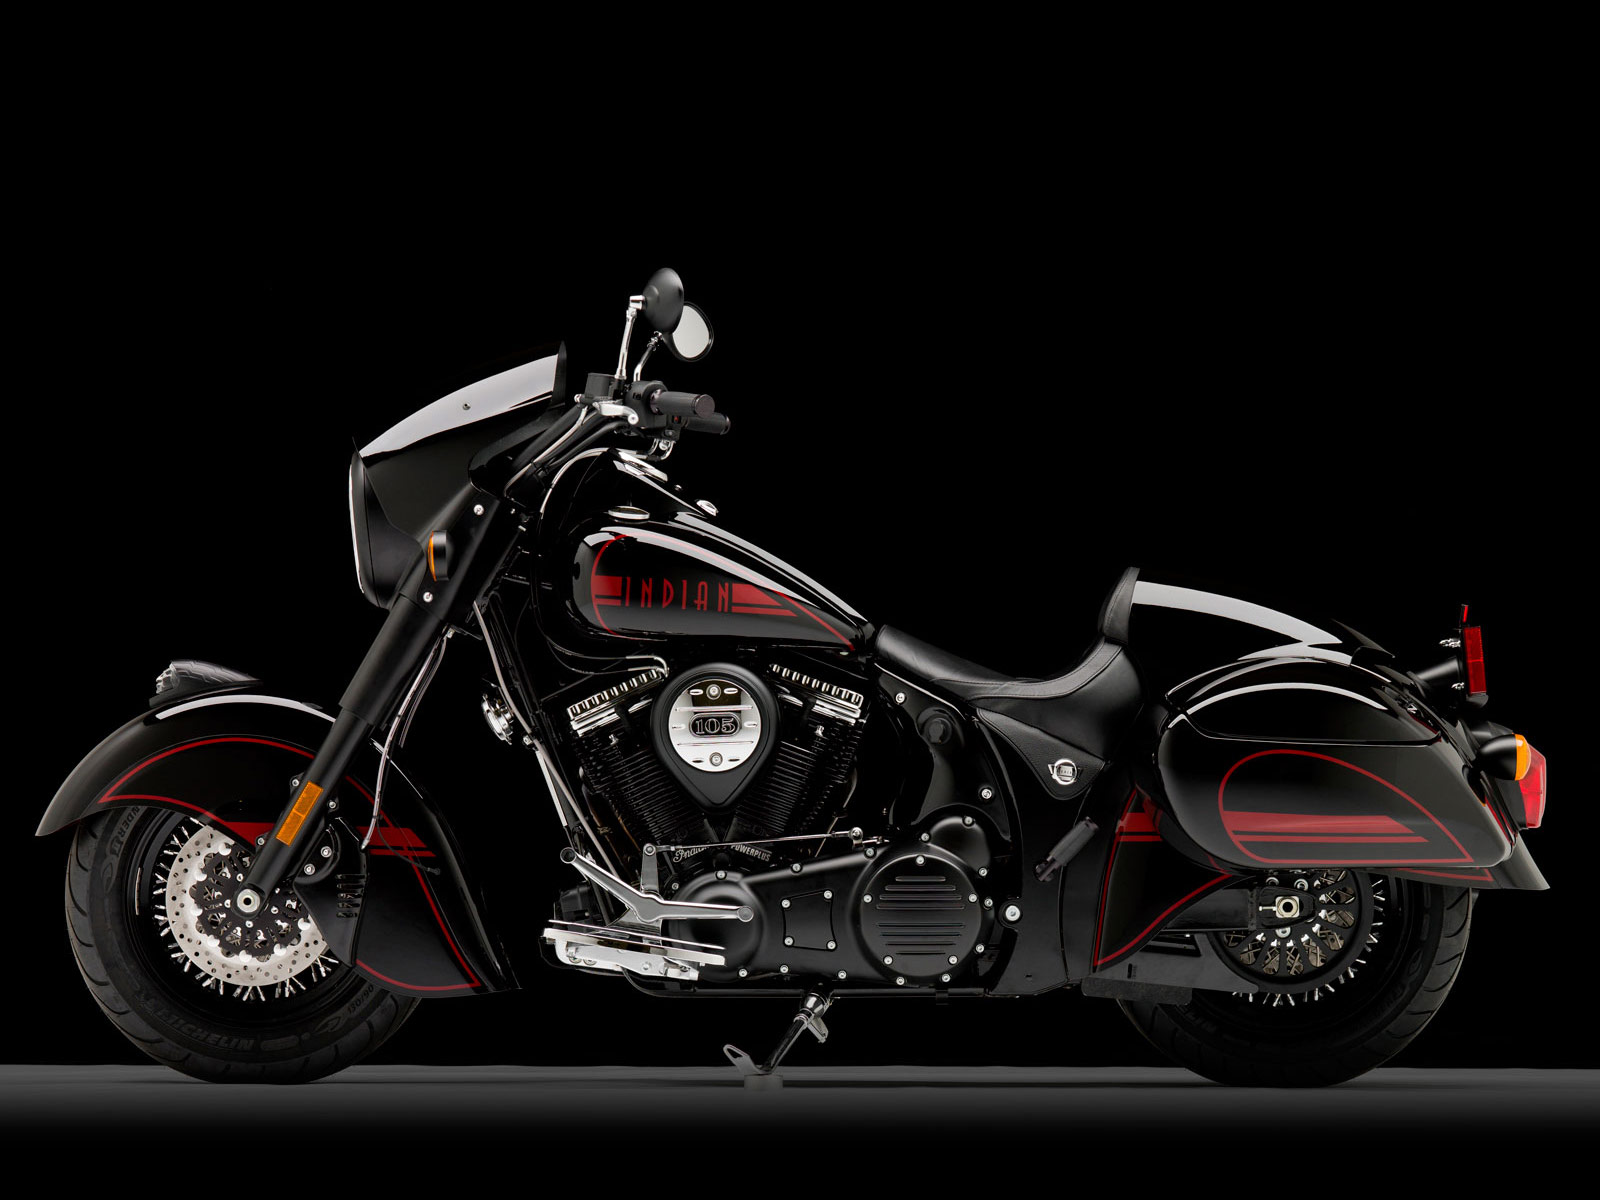 2011 Indian Chief Black Hawk motorcycle desktop wallpaper 3jpg 1600x1200